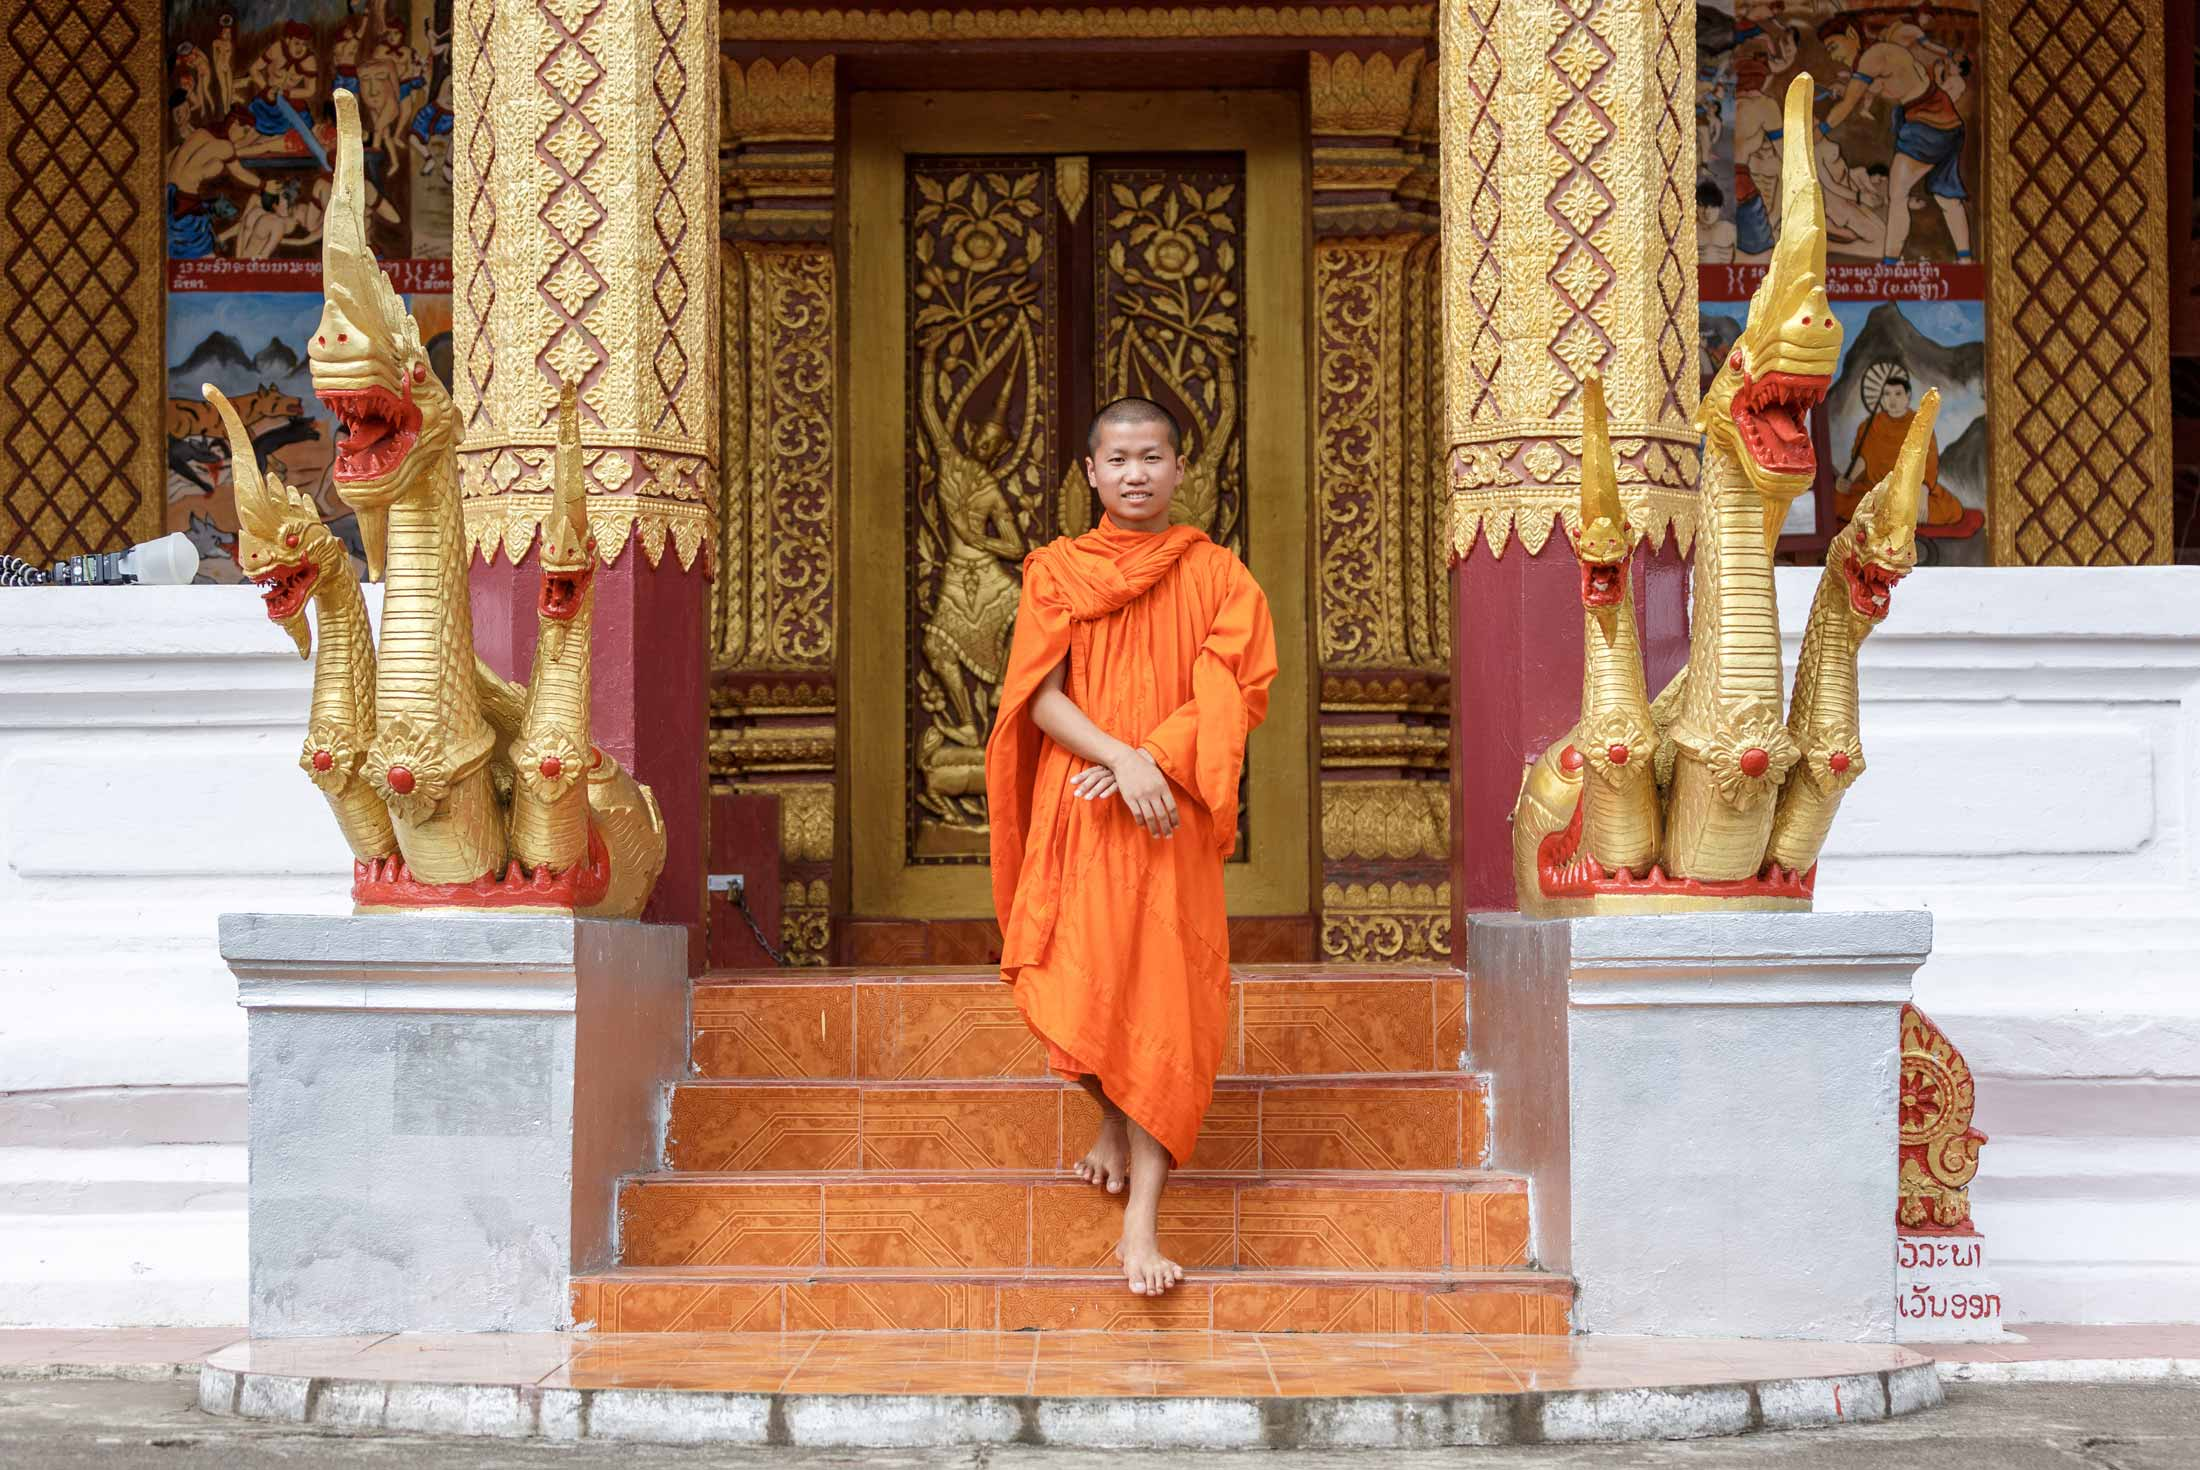 Thailand and Laos by Land and Sea - Phuket to Vientiane 4